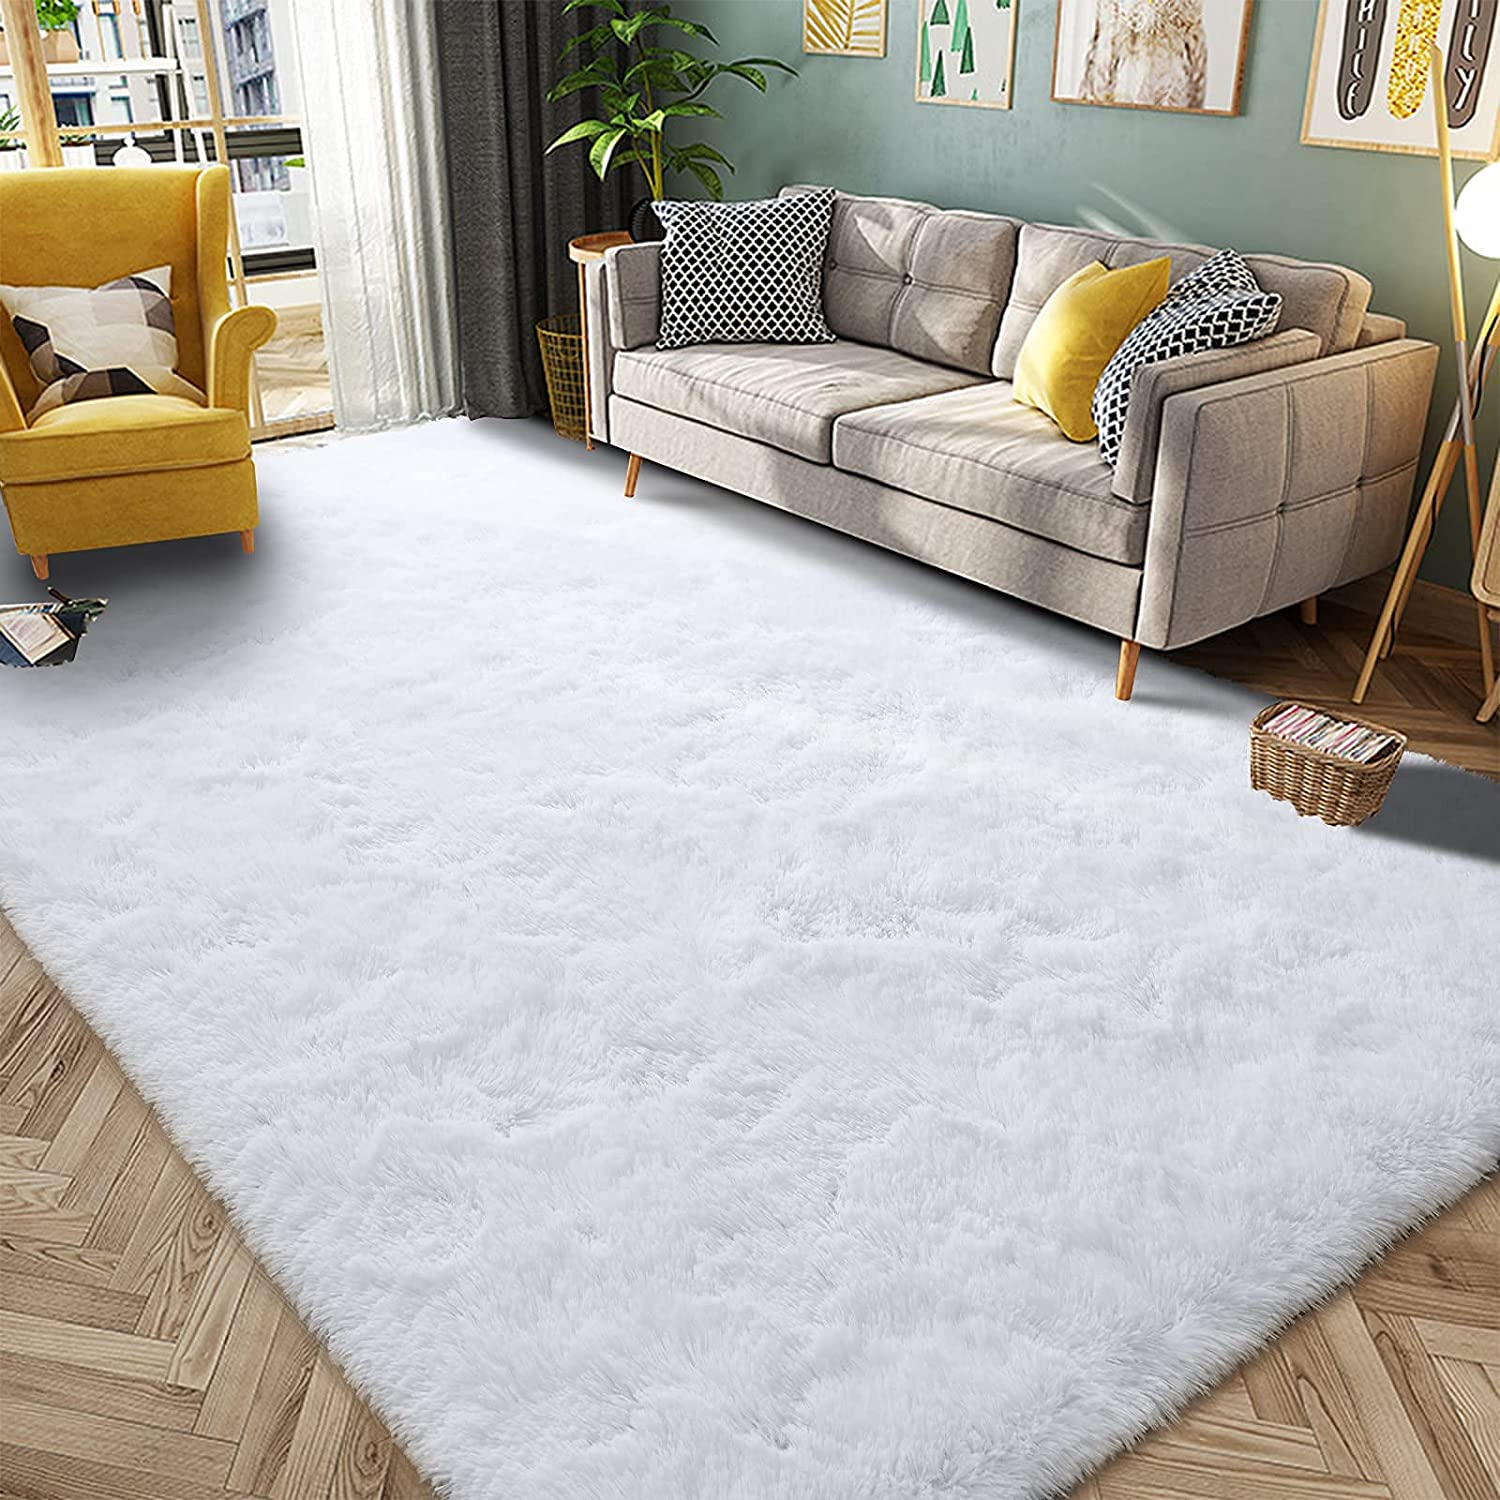 HQAYW Ranking TOP5 Modern Fluffy Area Rug Shaggy shopping Roo Rugs for Living Bedroom